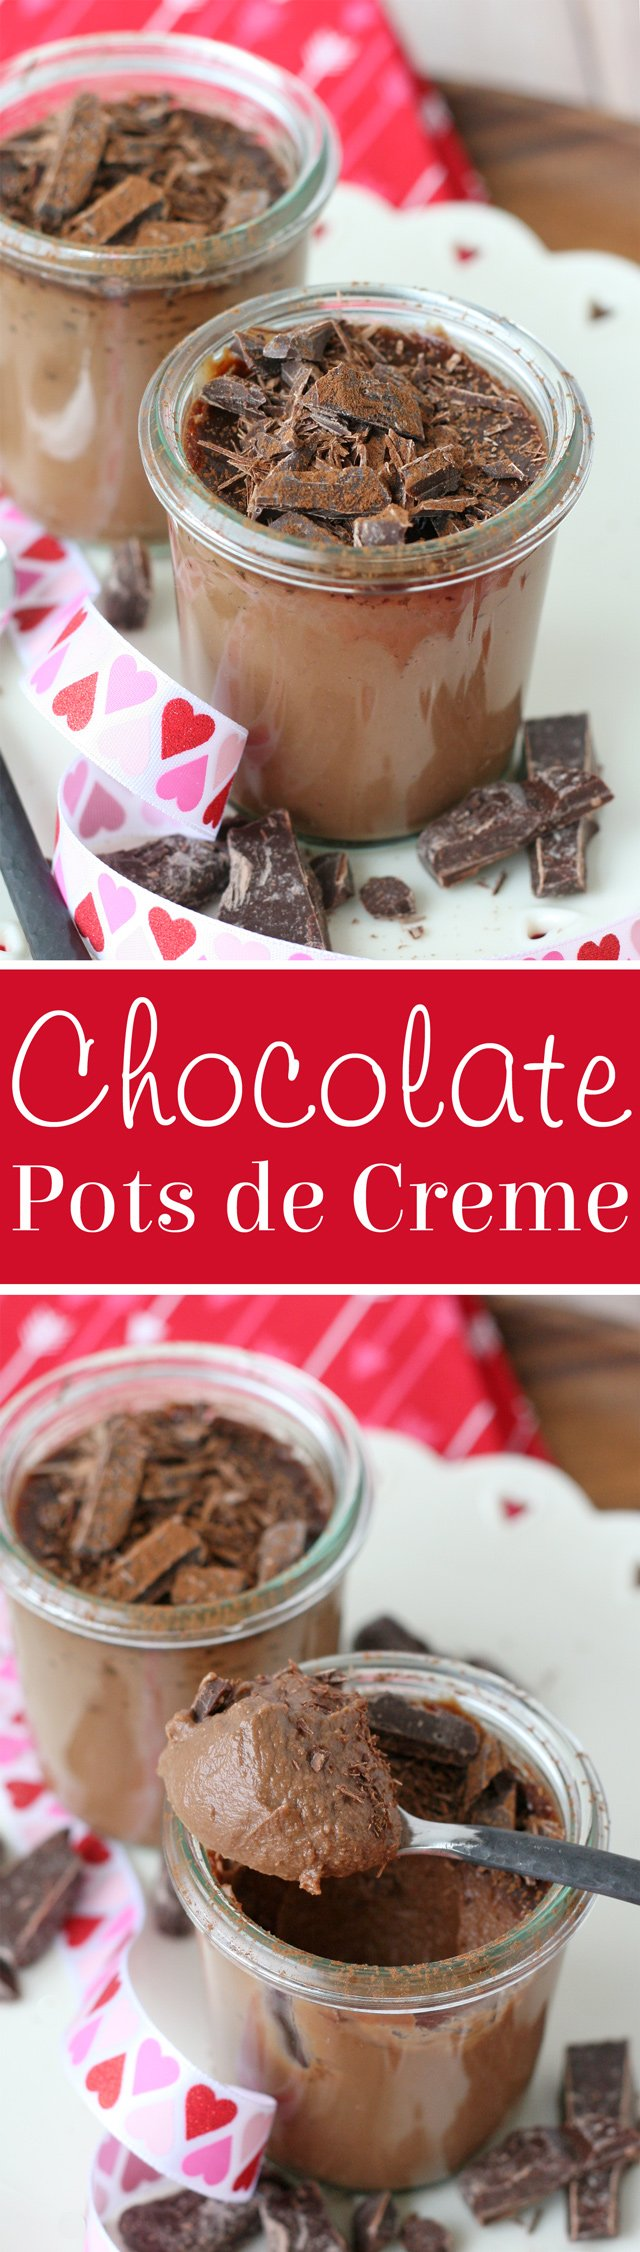 Rich and delicious! This Chocolate Pots de Creme is the perfect chocolate dessert!